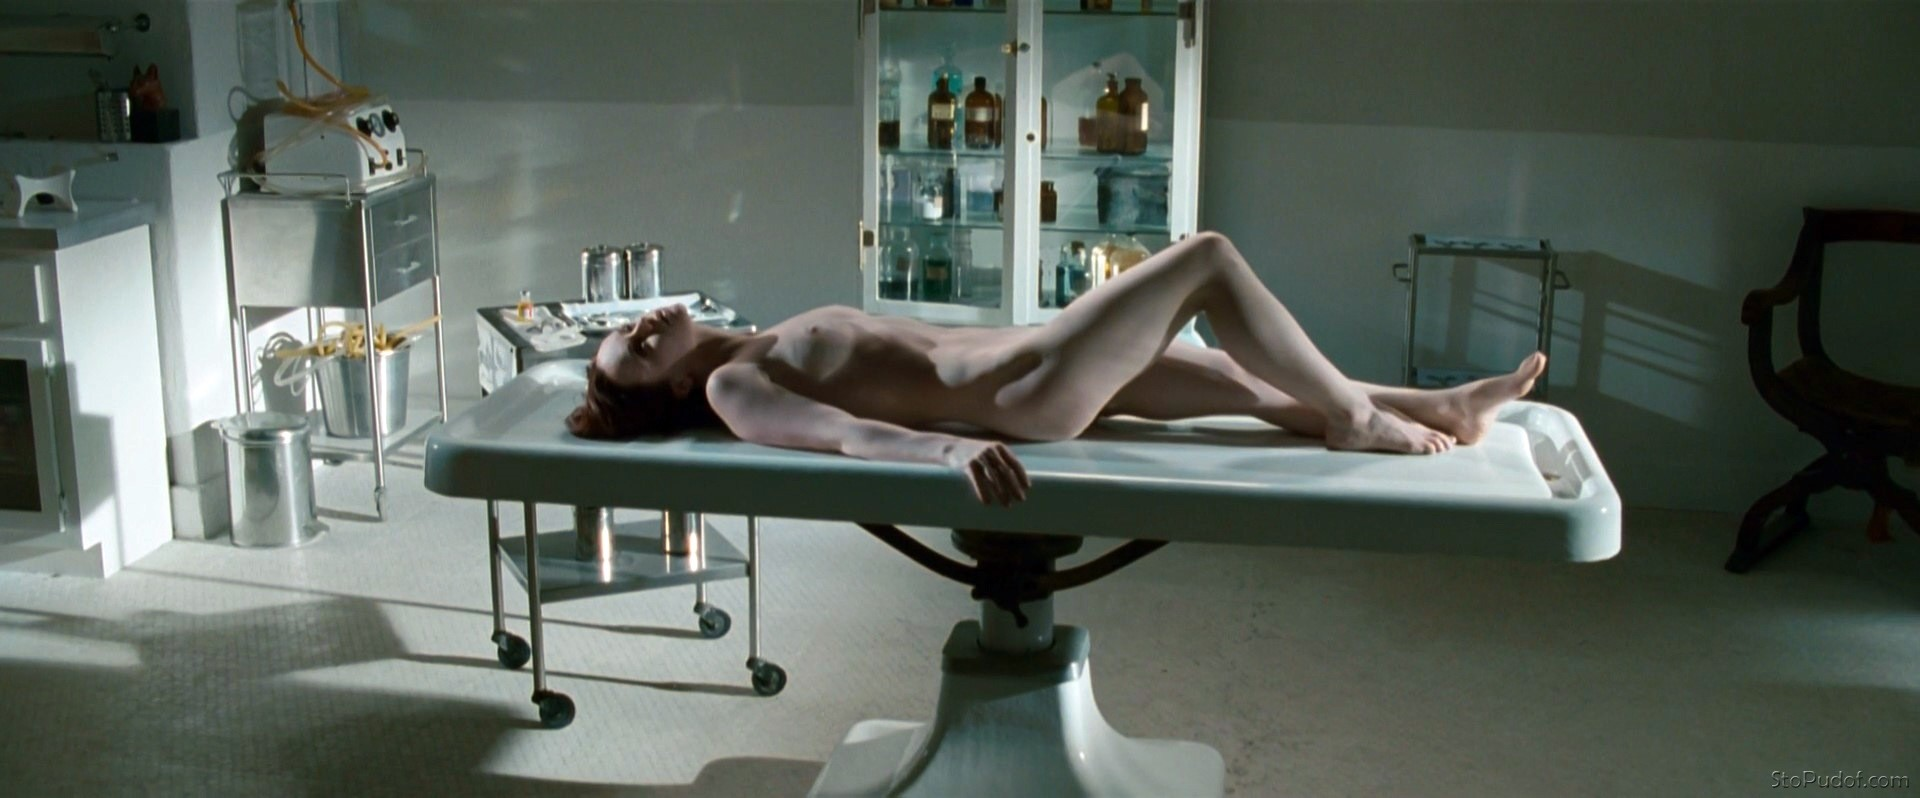 Christina Ricci more nude pictures - UkPhotoSafari